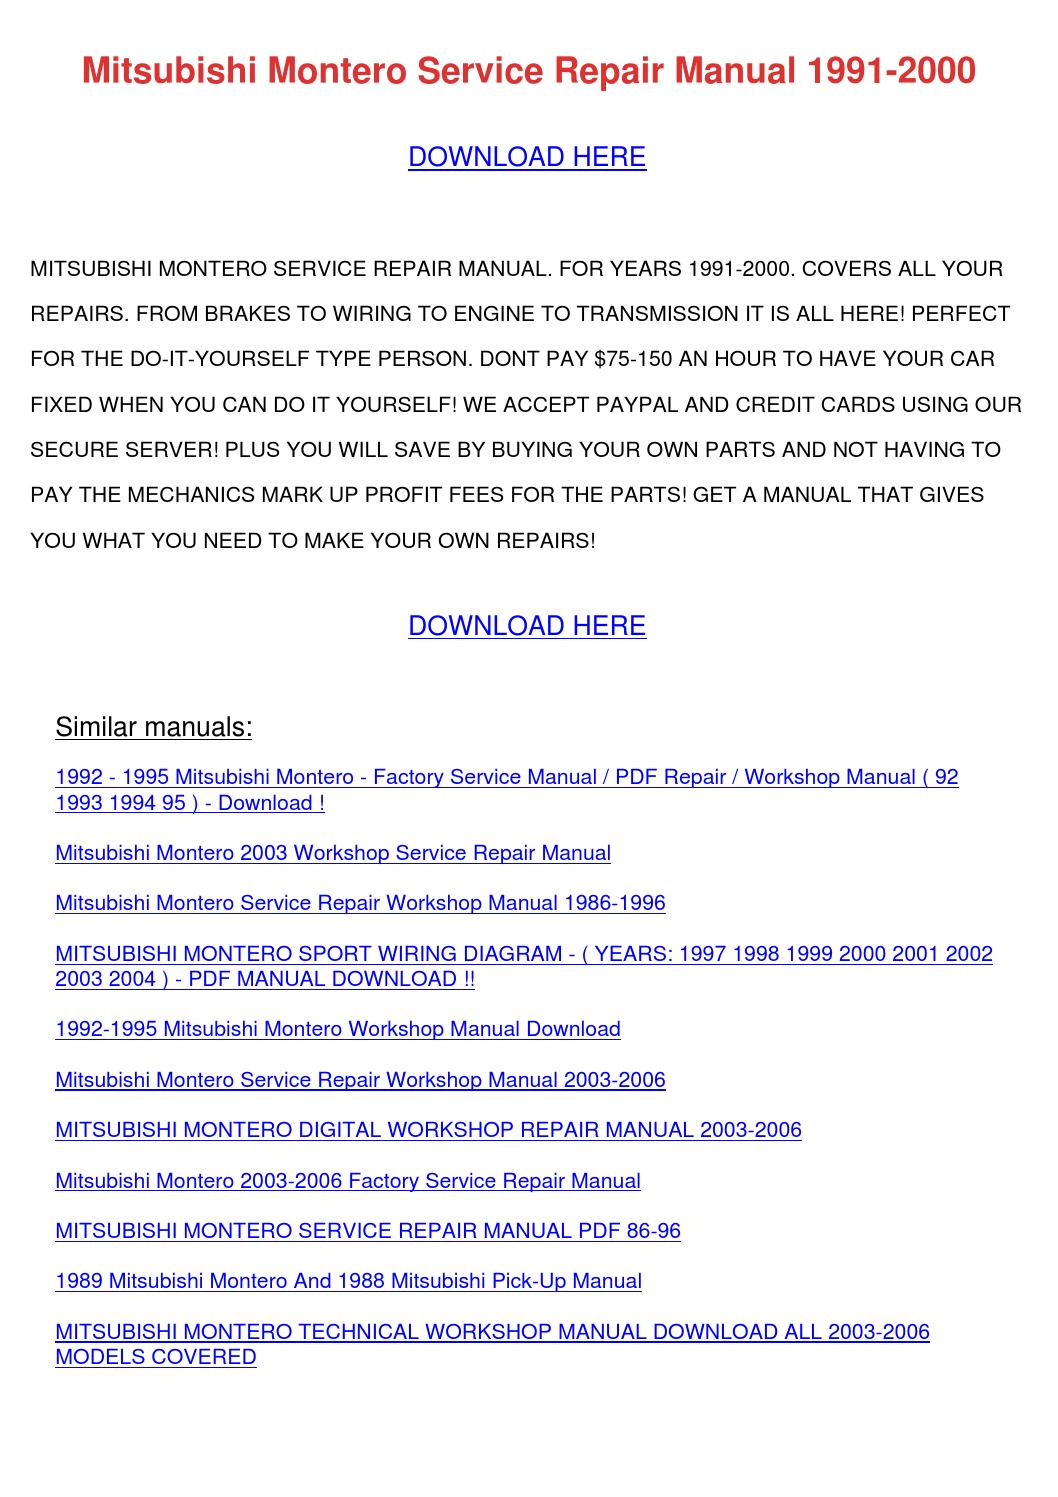 Mitsubishi Montero Service Repair Manual 1991 By